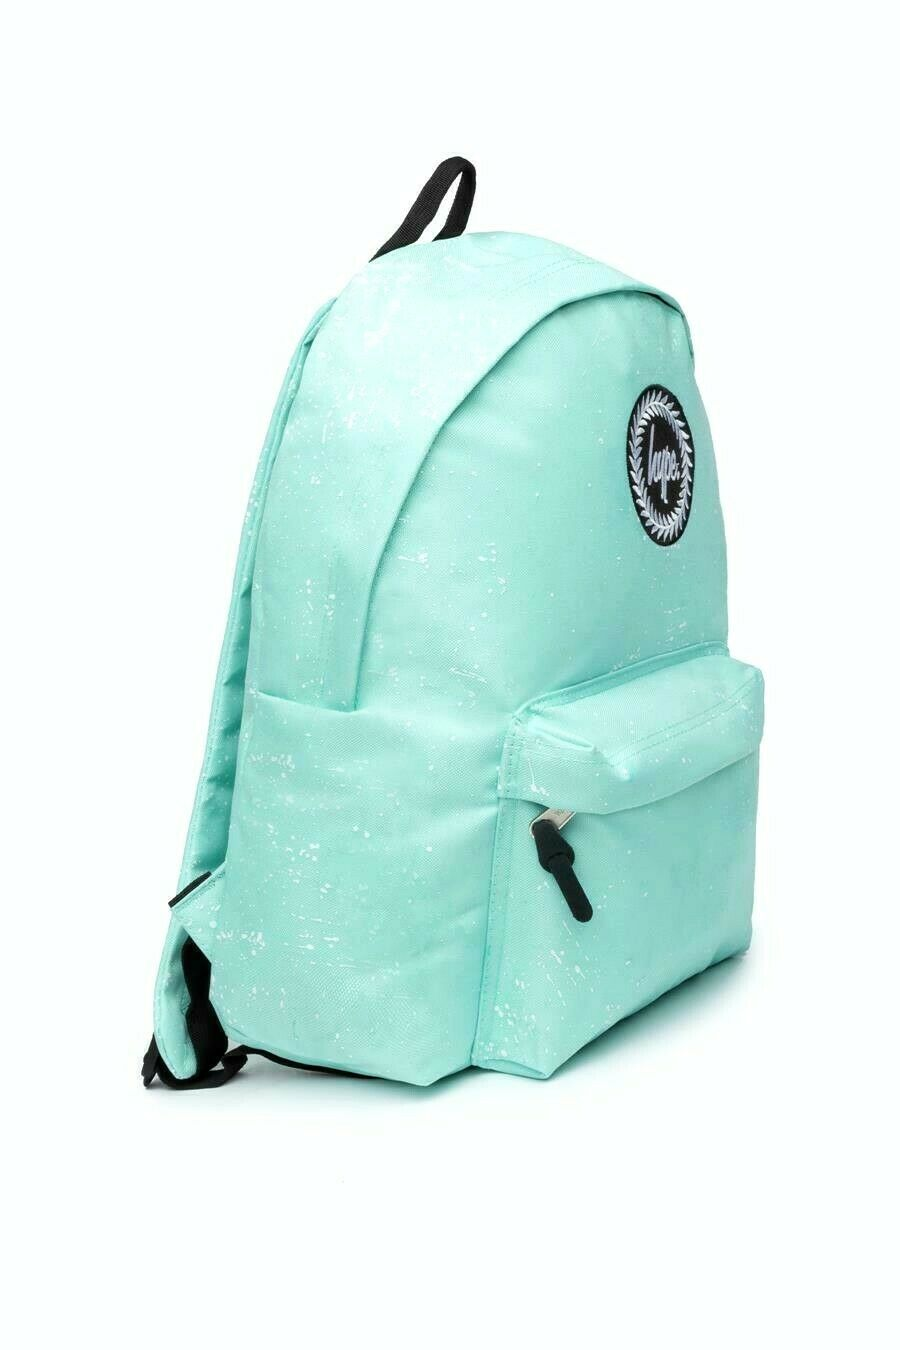 HYPE SPECKLE BACKPACK RUCKSACK BAG - MINT/WHITE